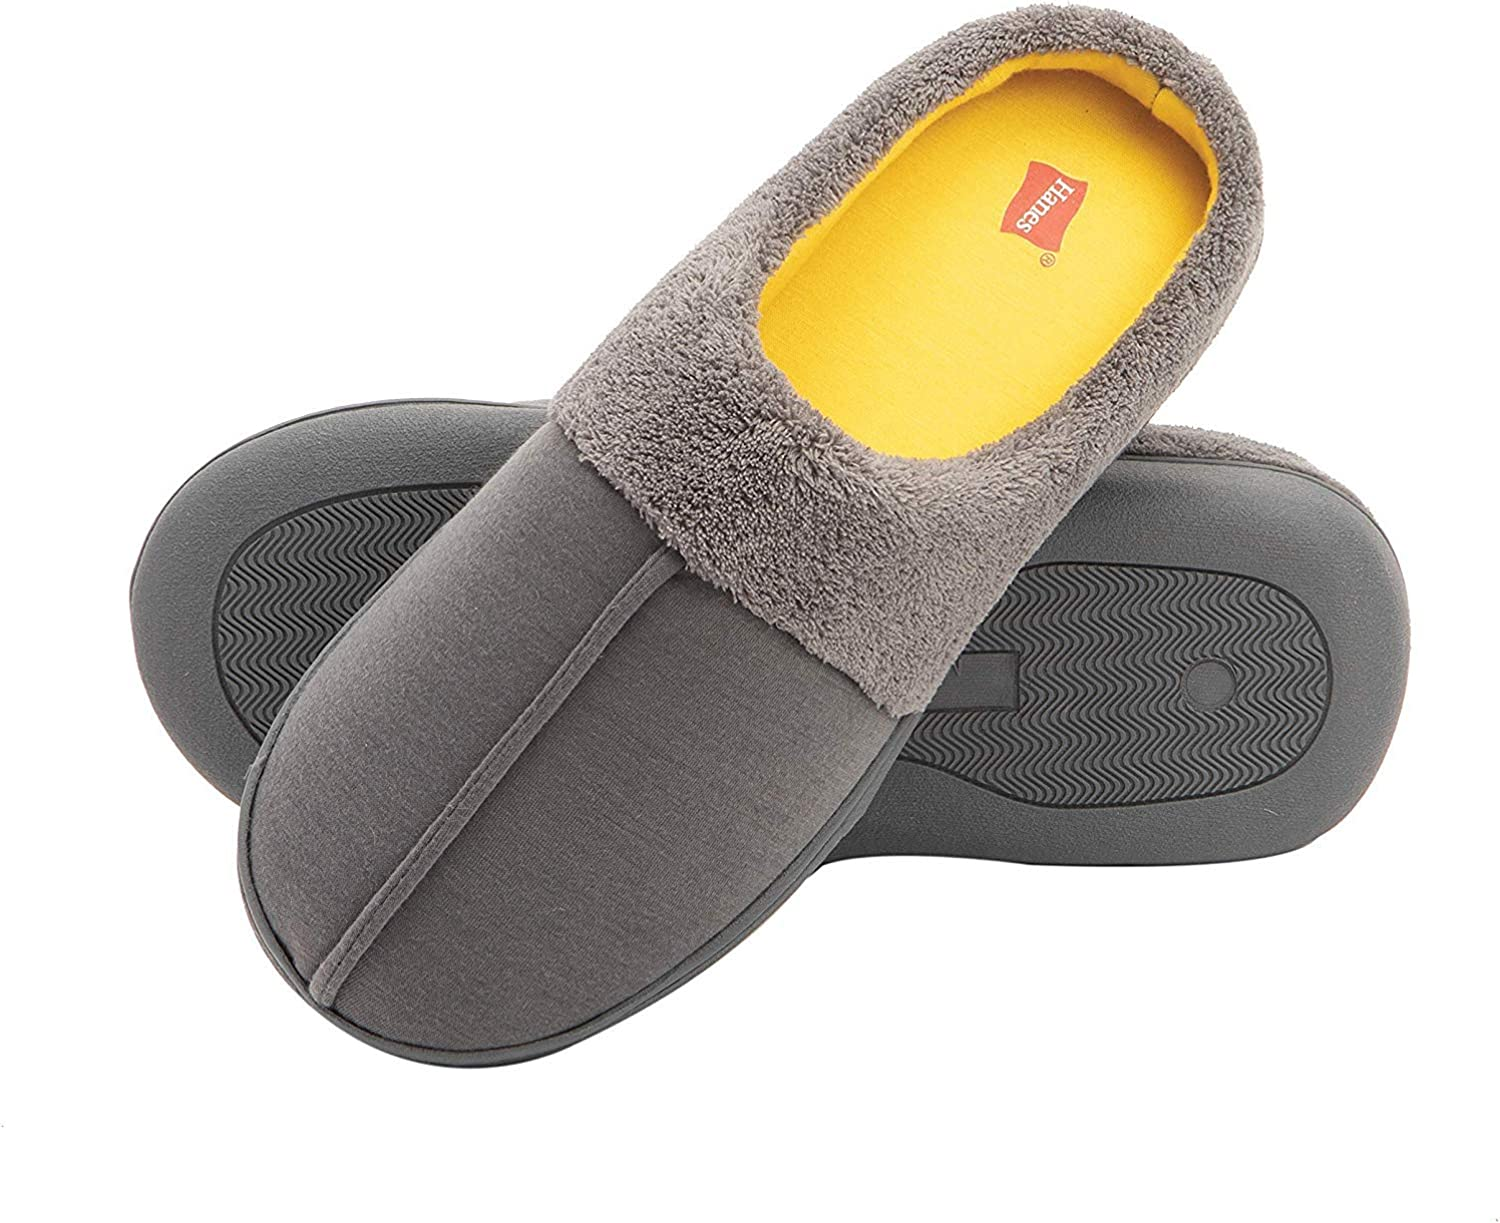 Hanes Kids' Slipper Clog House Shoe with Indoor Outdoor Memory Foam Sole Fresh Iq Odor Protection